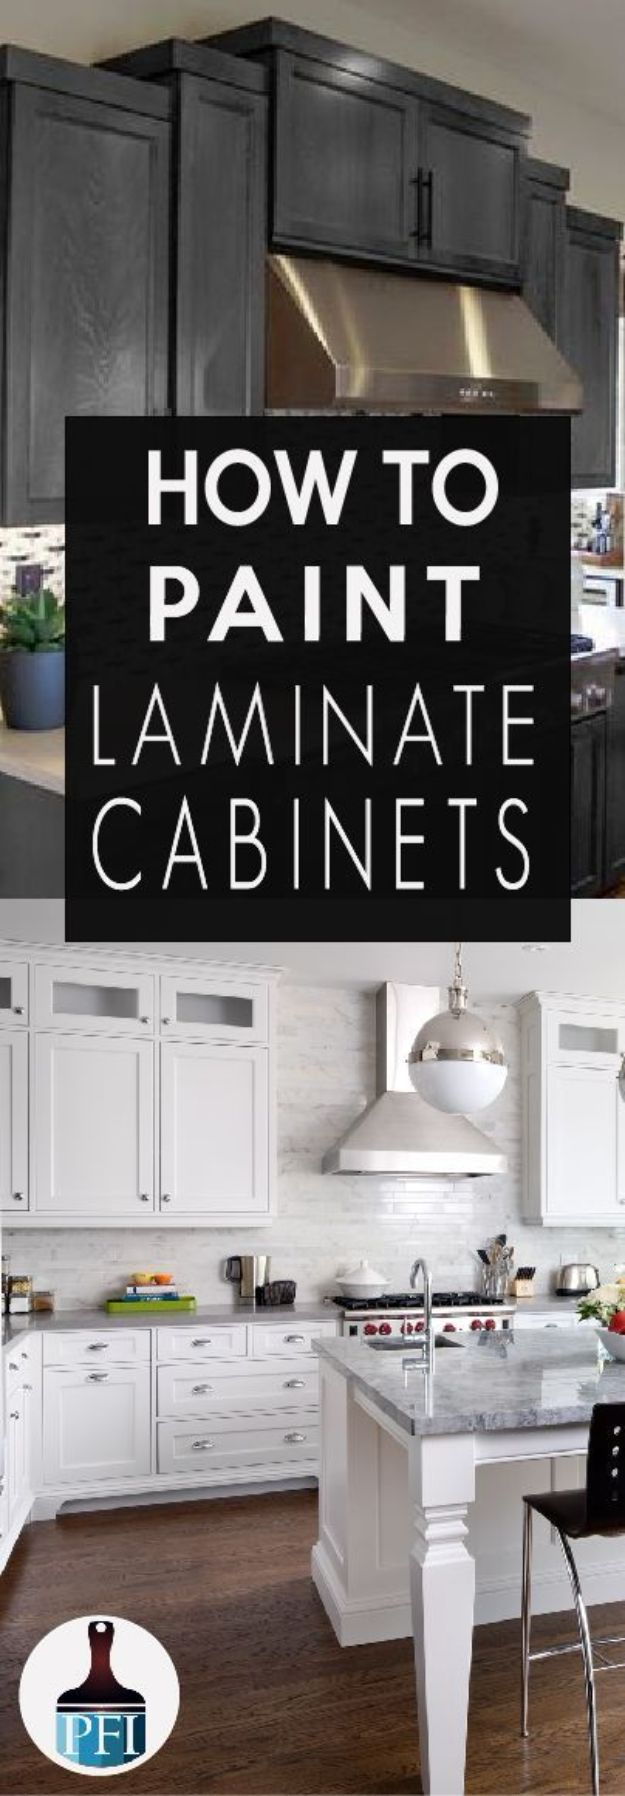 DIY Painting Hacks - Painting Laminate Cabinets - Easy Ways To Shortcut House Painting - Wall Prep, Painters Tape, Trim, Edging, Ceiling, Exterior Cutting In, Furniture and Crafts Paint Tips - Paint Your House Or Your Room With These Time Saving Painter Hacks and Quick Tricks http://diyjoy.com/diy-painting-hacks